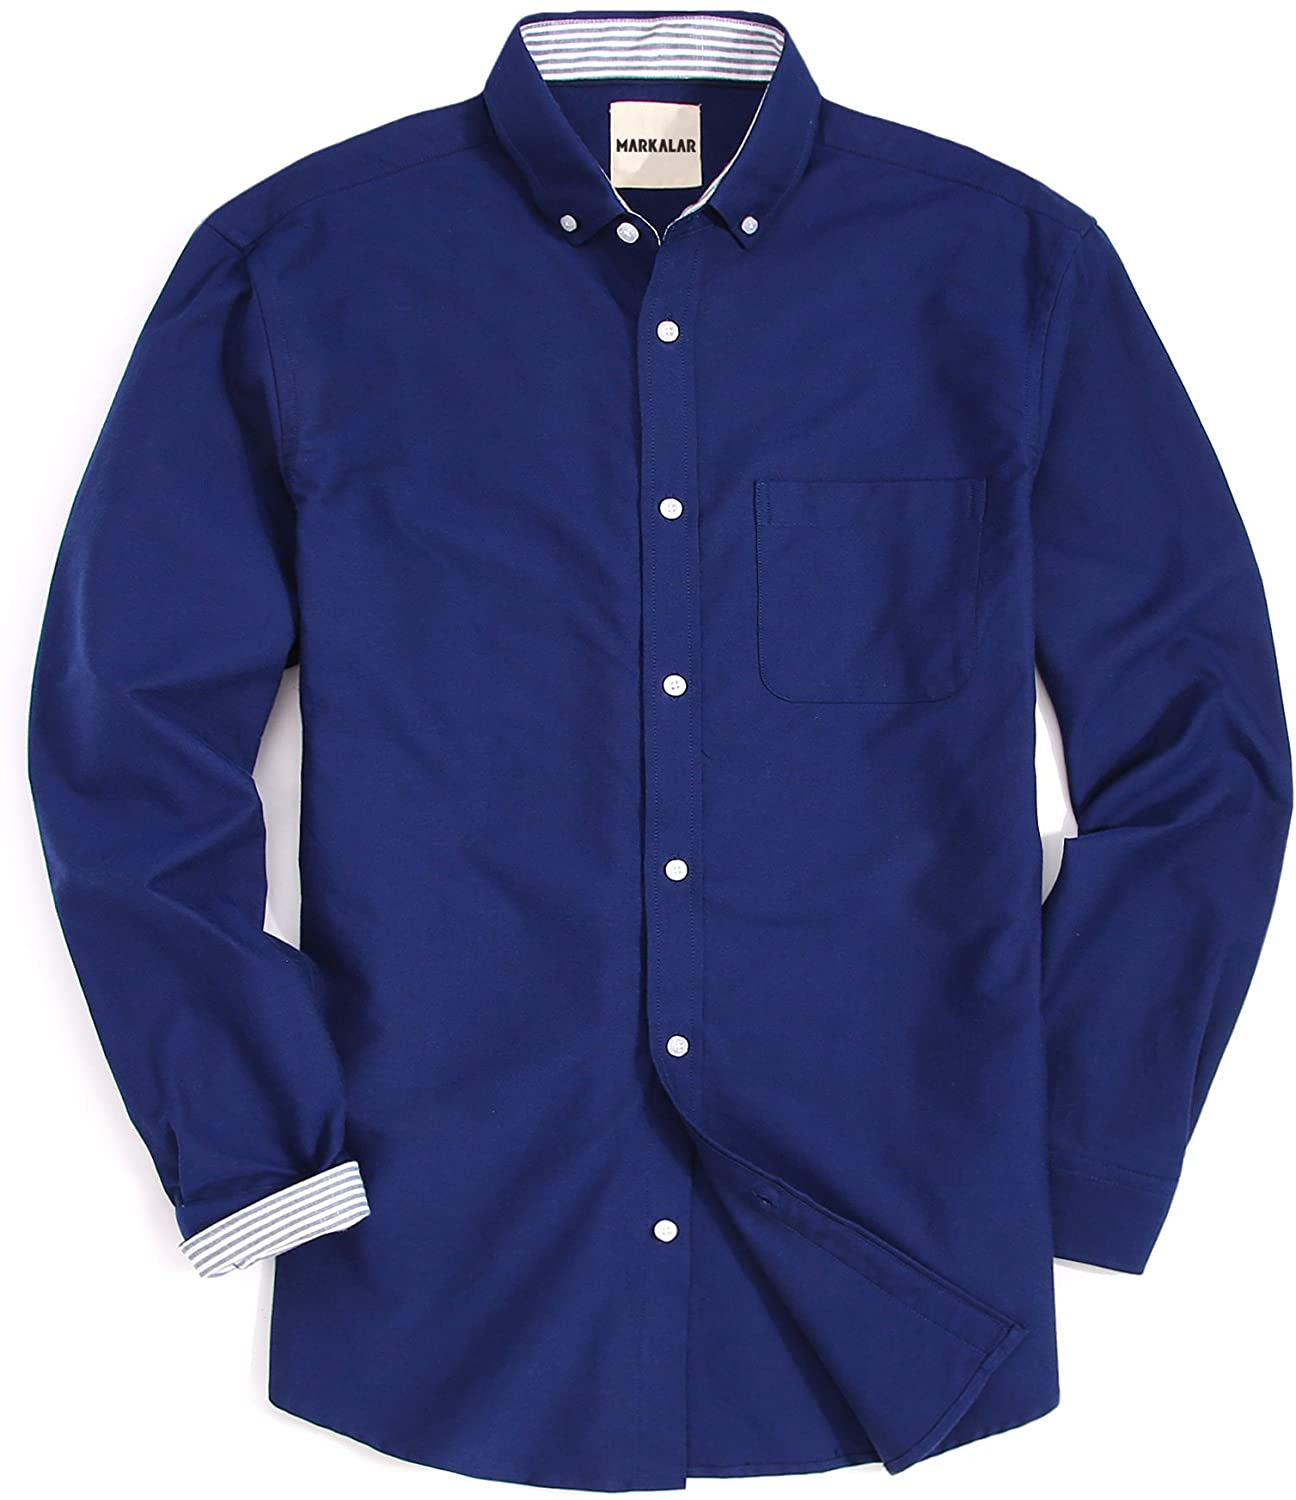 Markalar Mens Oxford Dress Shirts Modern Fit Long Sleeve Casual Button Down Shirt